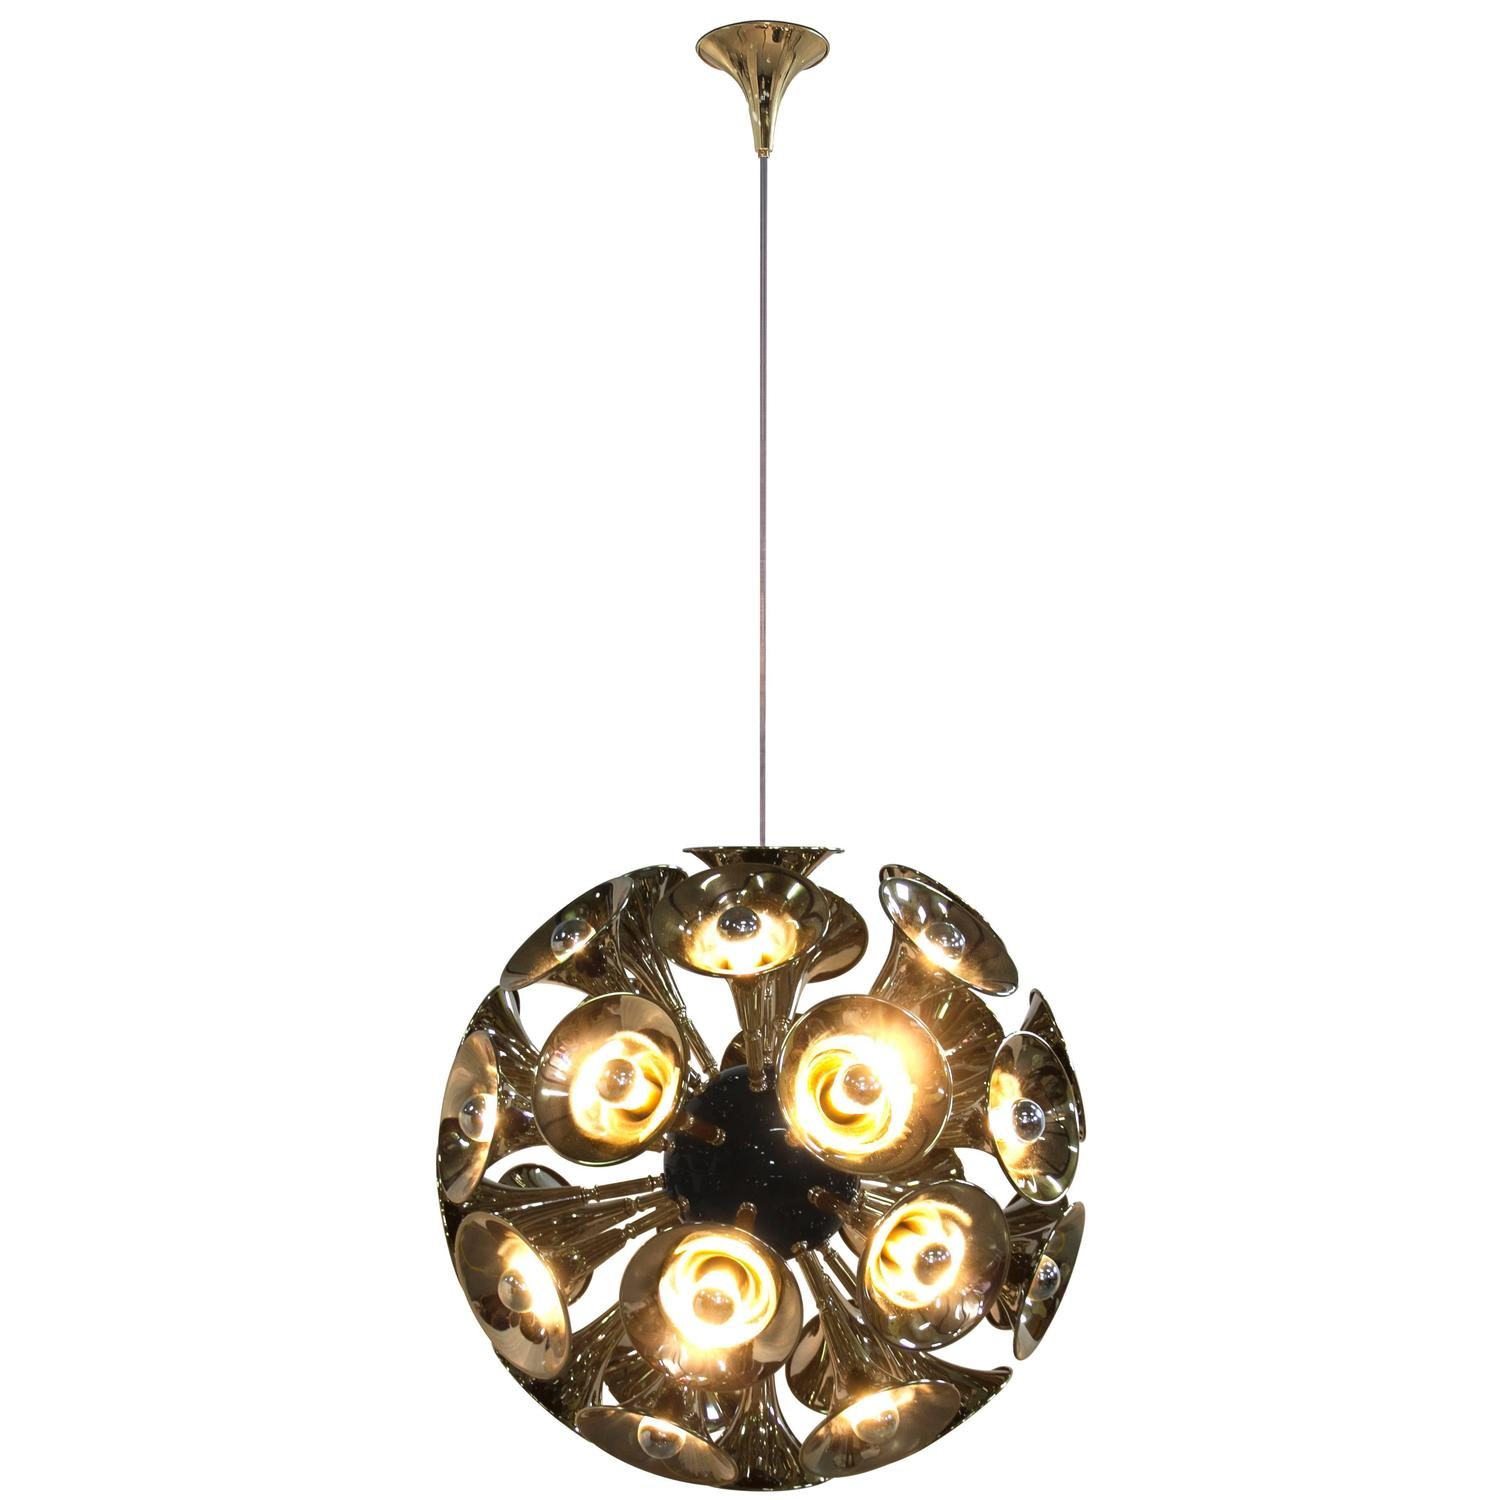 European Art Deco Botti Gold and Brass Spherical Chandelier by